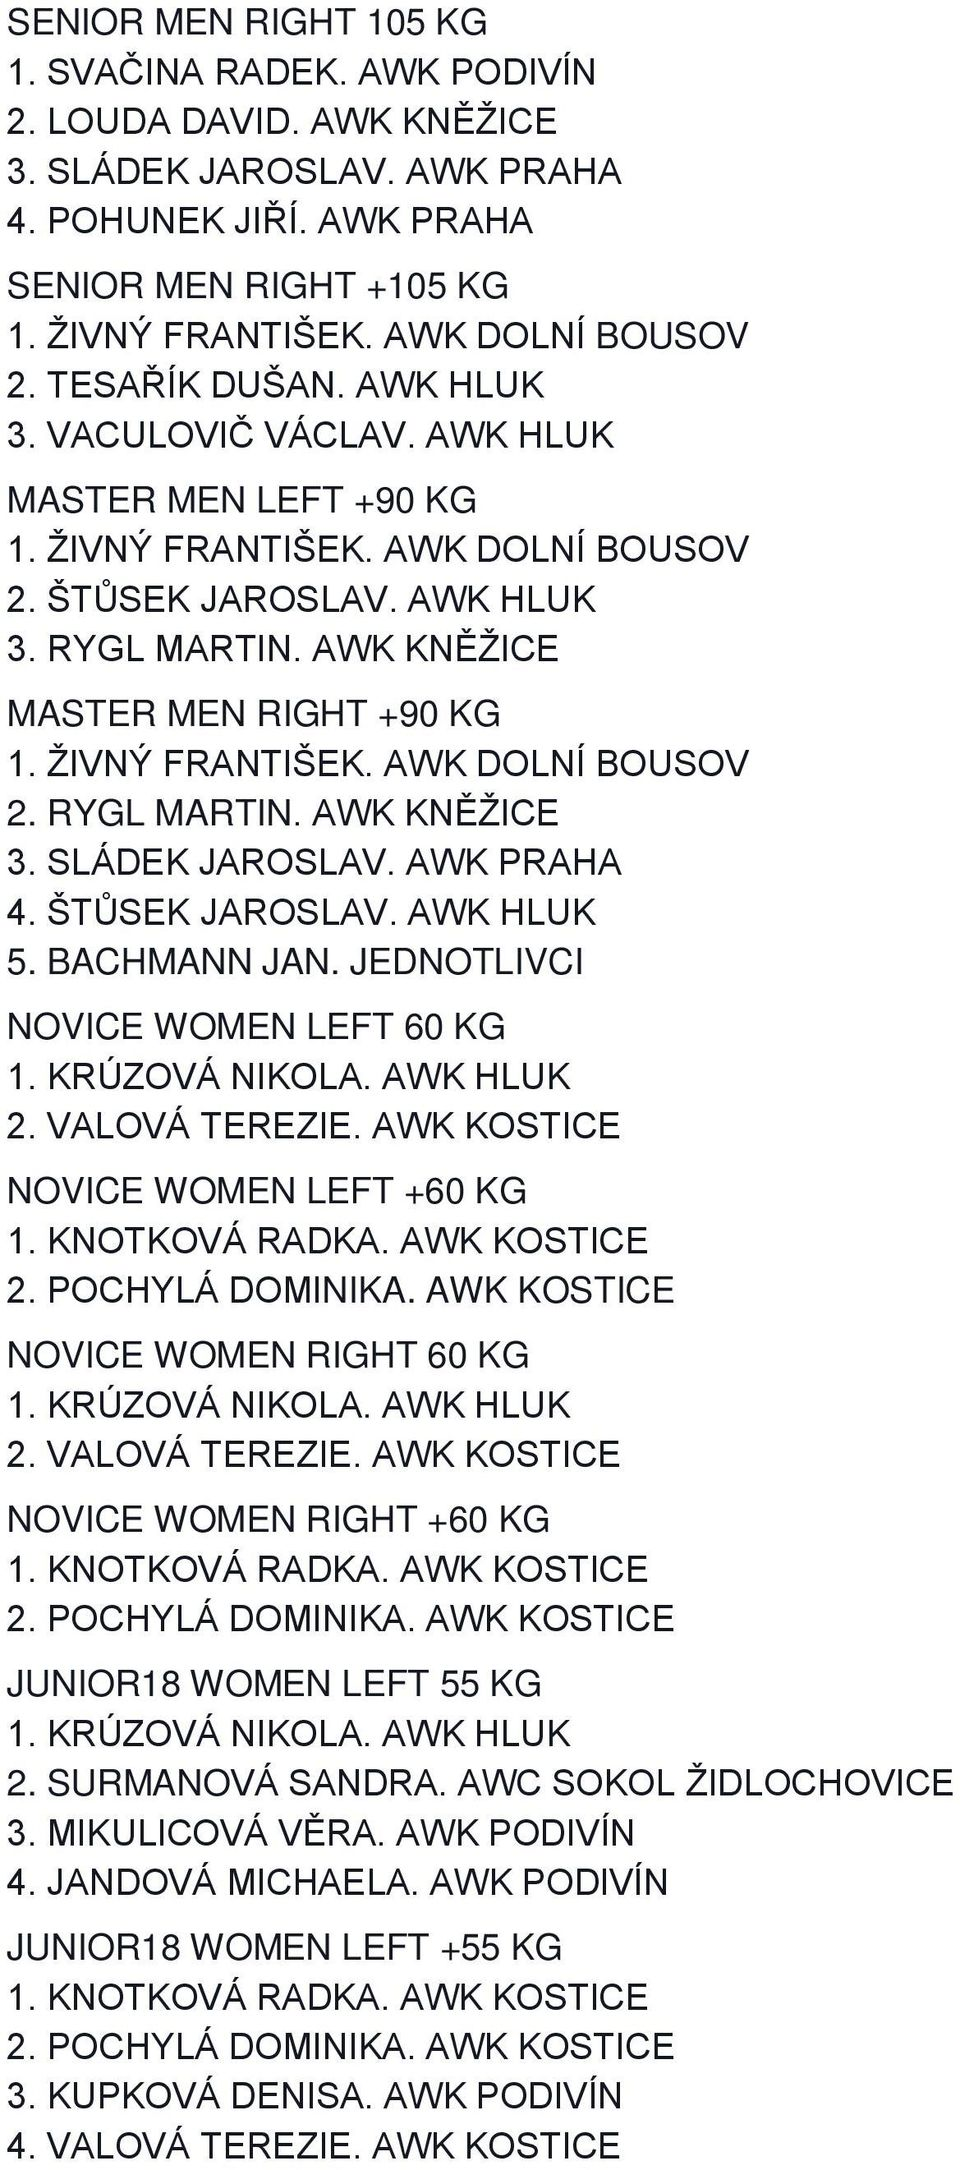 ŠTŮSEK JAROSLAV. AWK HLUK 5. BACHMANN JAN. JEDNOTLIVCI NOVICE WOMEN LEFT 60 KG 2. VALOVÁ TEREZIE. AWK KOSTICE NOVICE WOMEN LEFT +60 KG NOVICE WOMEN RIGHT 60 KG 2. VALOVÁ TEREZIE. AWK KOSTICE NOVICE WOMEN RIGHT +60 KG JUNIOR18 WOMEN LEFT 55 KG 2.